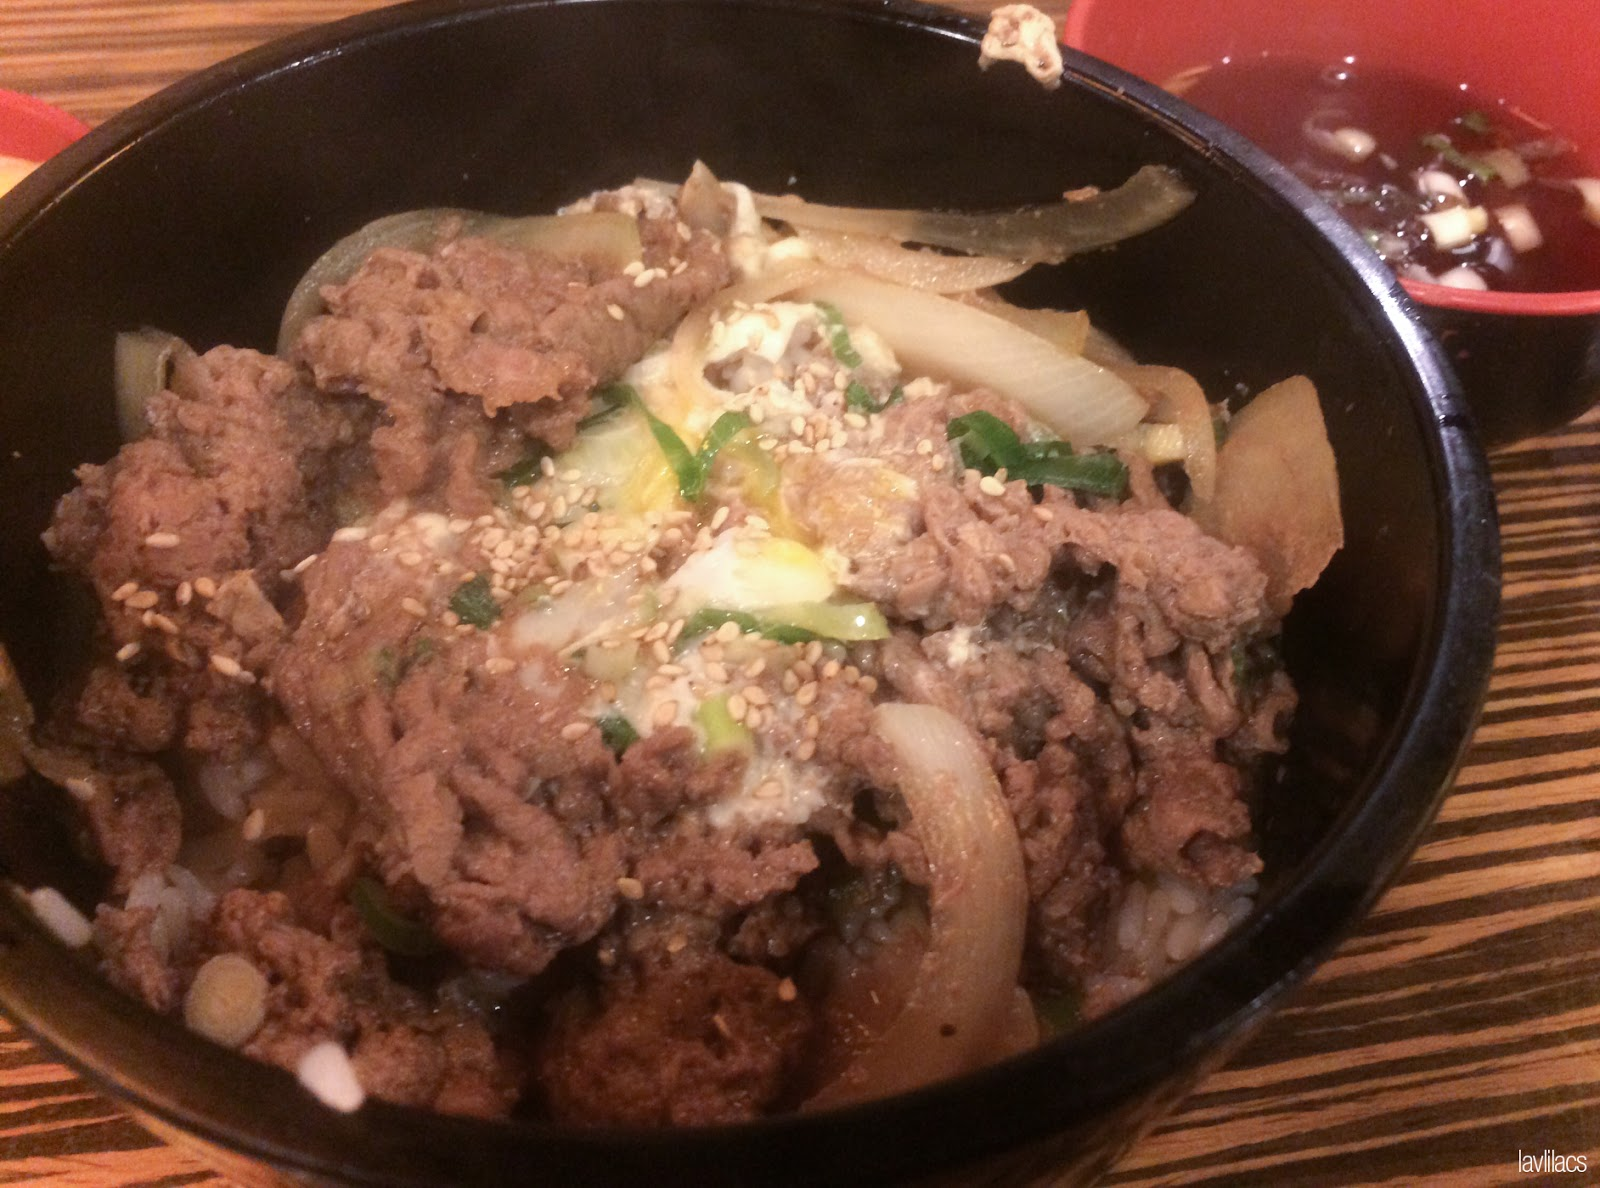 Seoul, Korea - Summer Study Abroad 2014 - Gyudon from some Japanese restaurant in Myeongdong